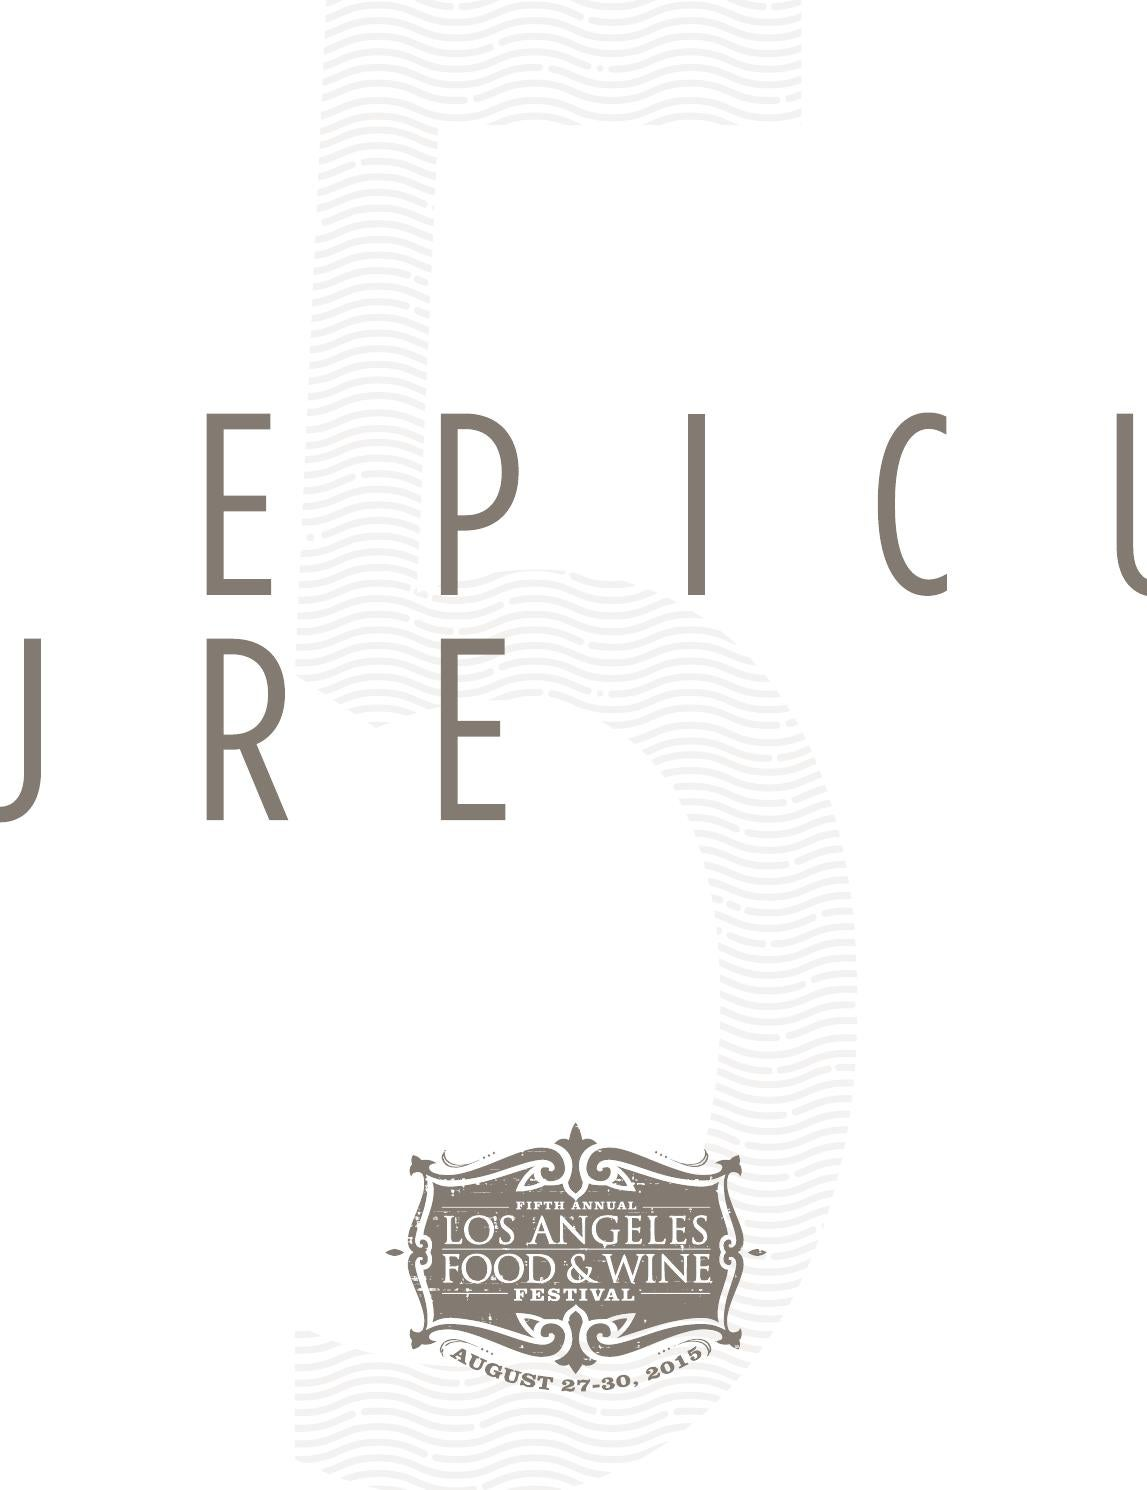 Los Angeles Food & Wine - 2015 Epicure by CLM_MRY - issuu